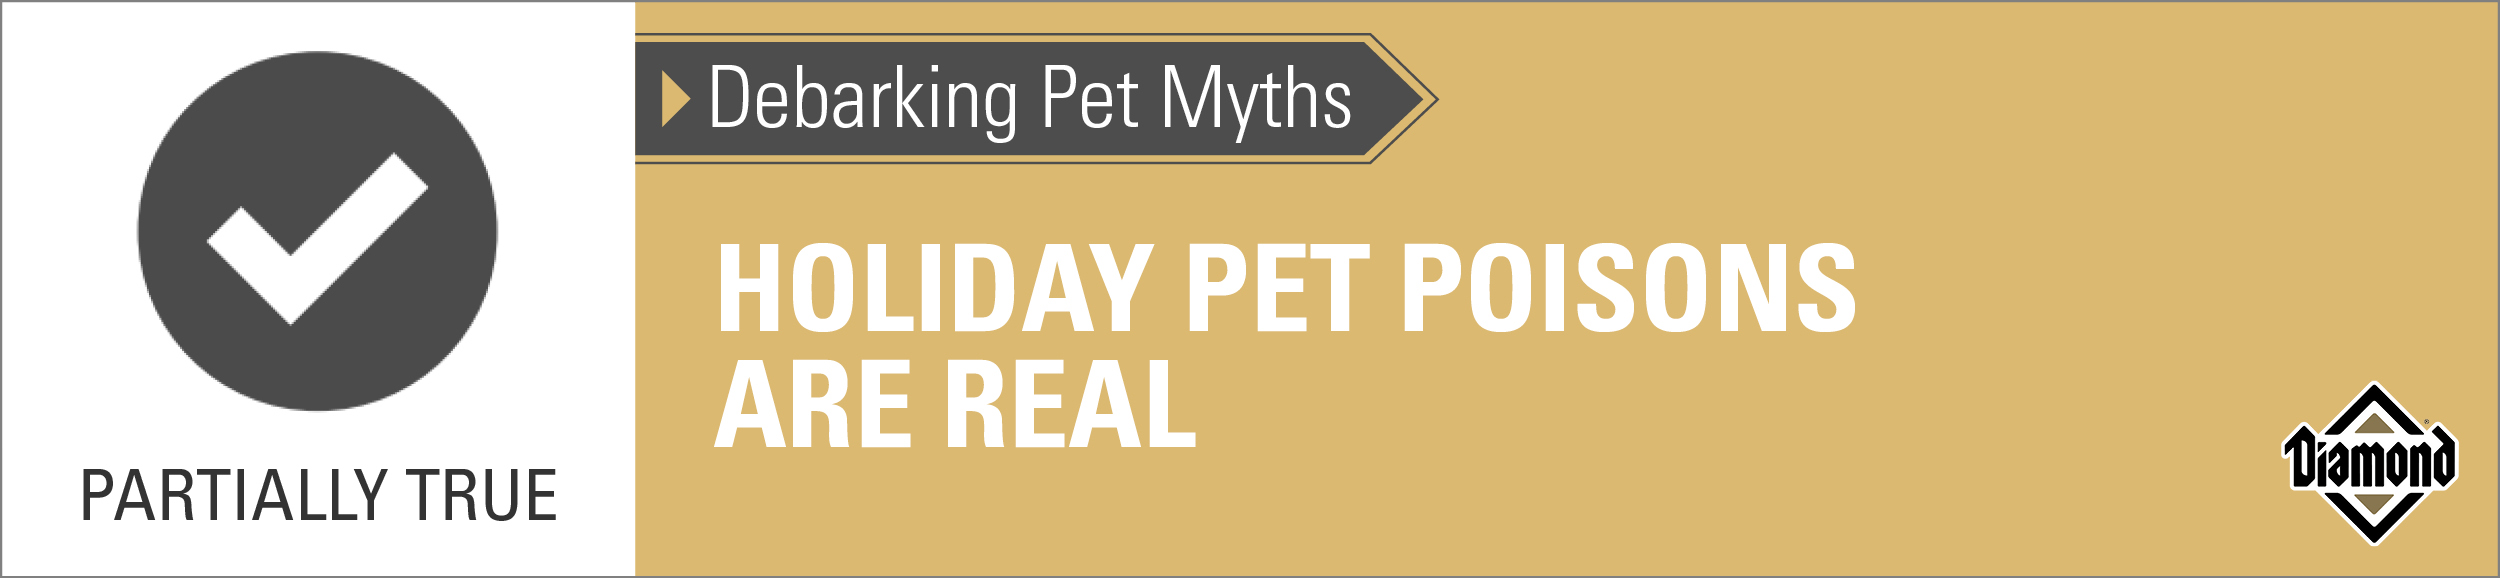 True: Pet Holiday Poisons Are Real | Diamond Pet Foods